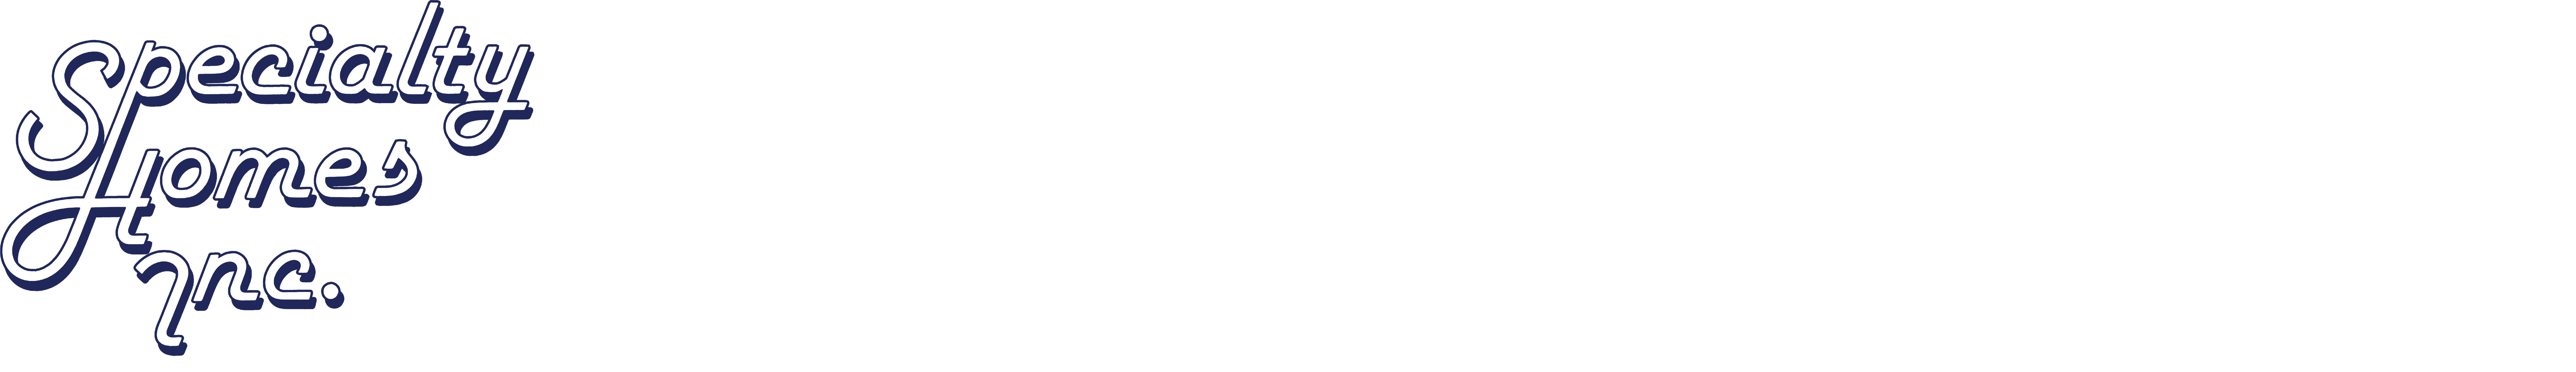 Specialty Homes, Inc.